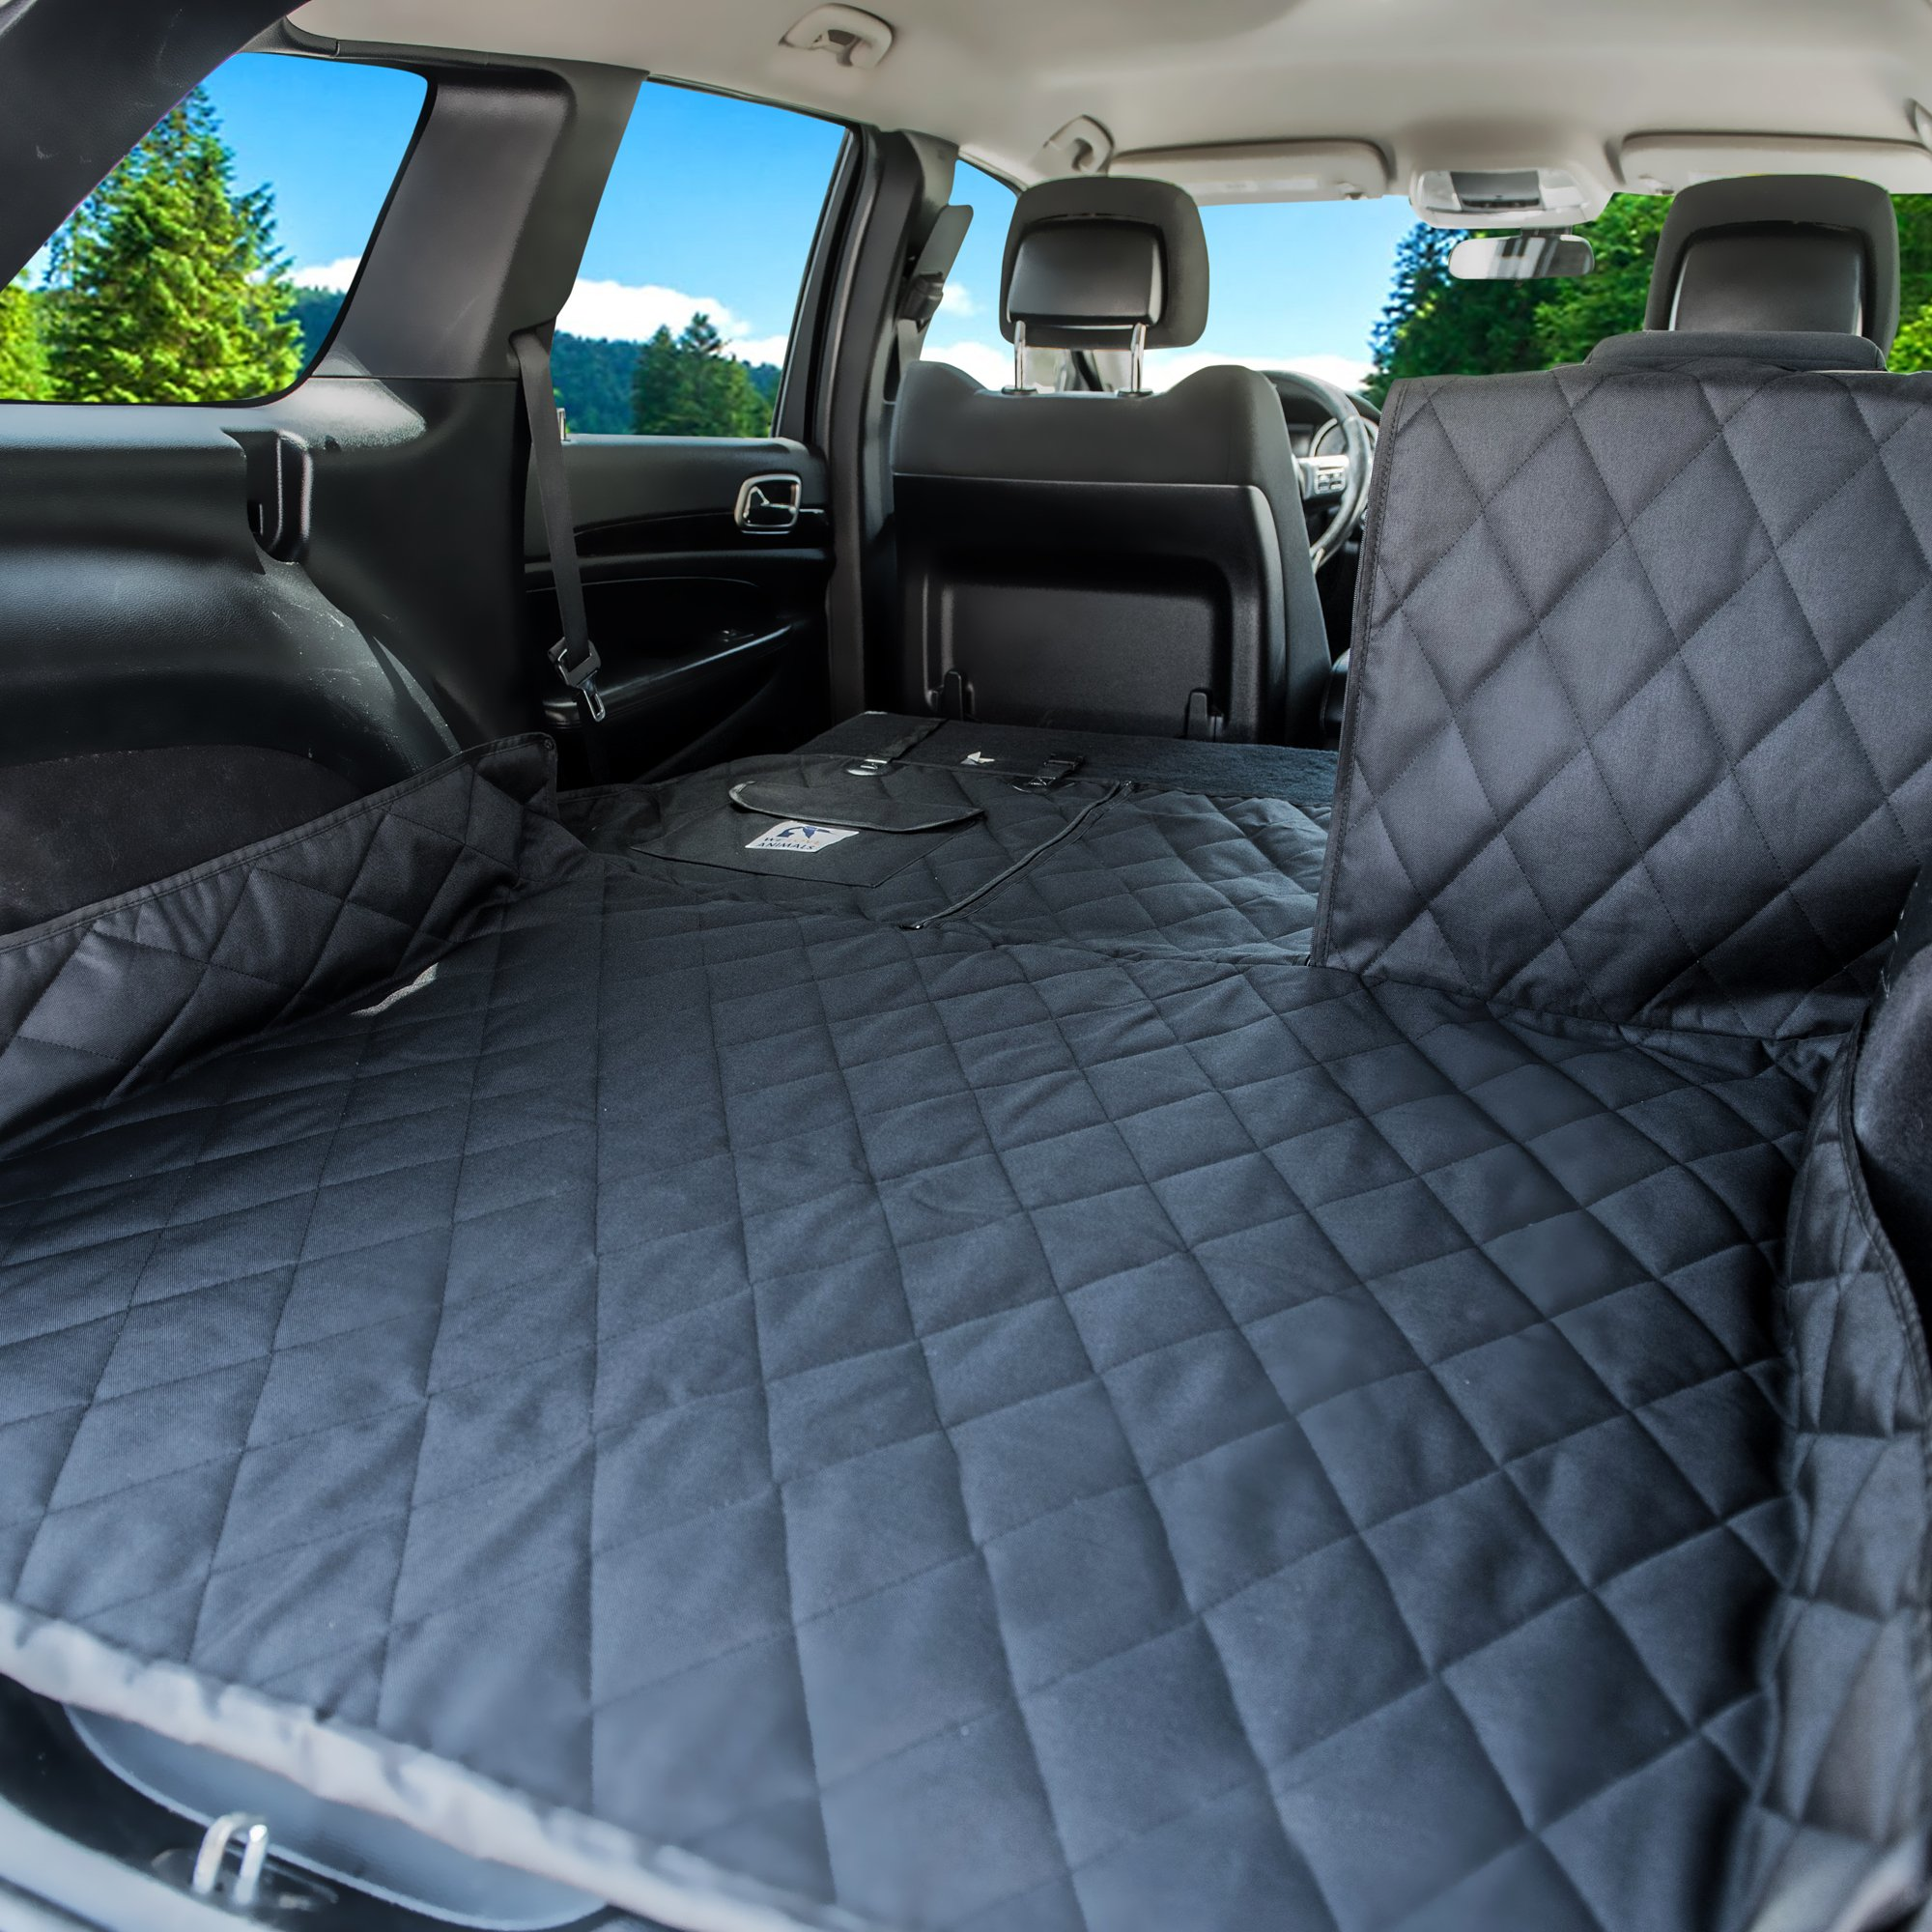 Dog Cargo Liner for SUV, Van, Truck & Jeep - Waterproof, Machine Washable, Nonslip Pet Seat Cover with Bumper Flap will keep your vehicle as clean as ever - XL, Universal Fit - BONUS Carry Bag by WE LOVE ANIMALS (Image #4)